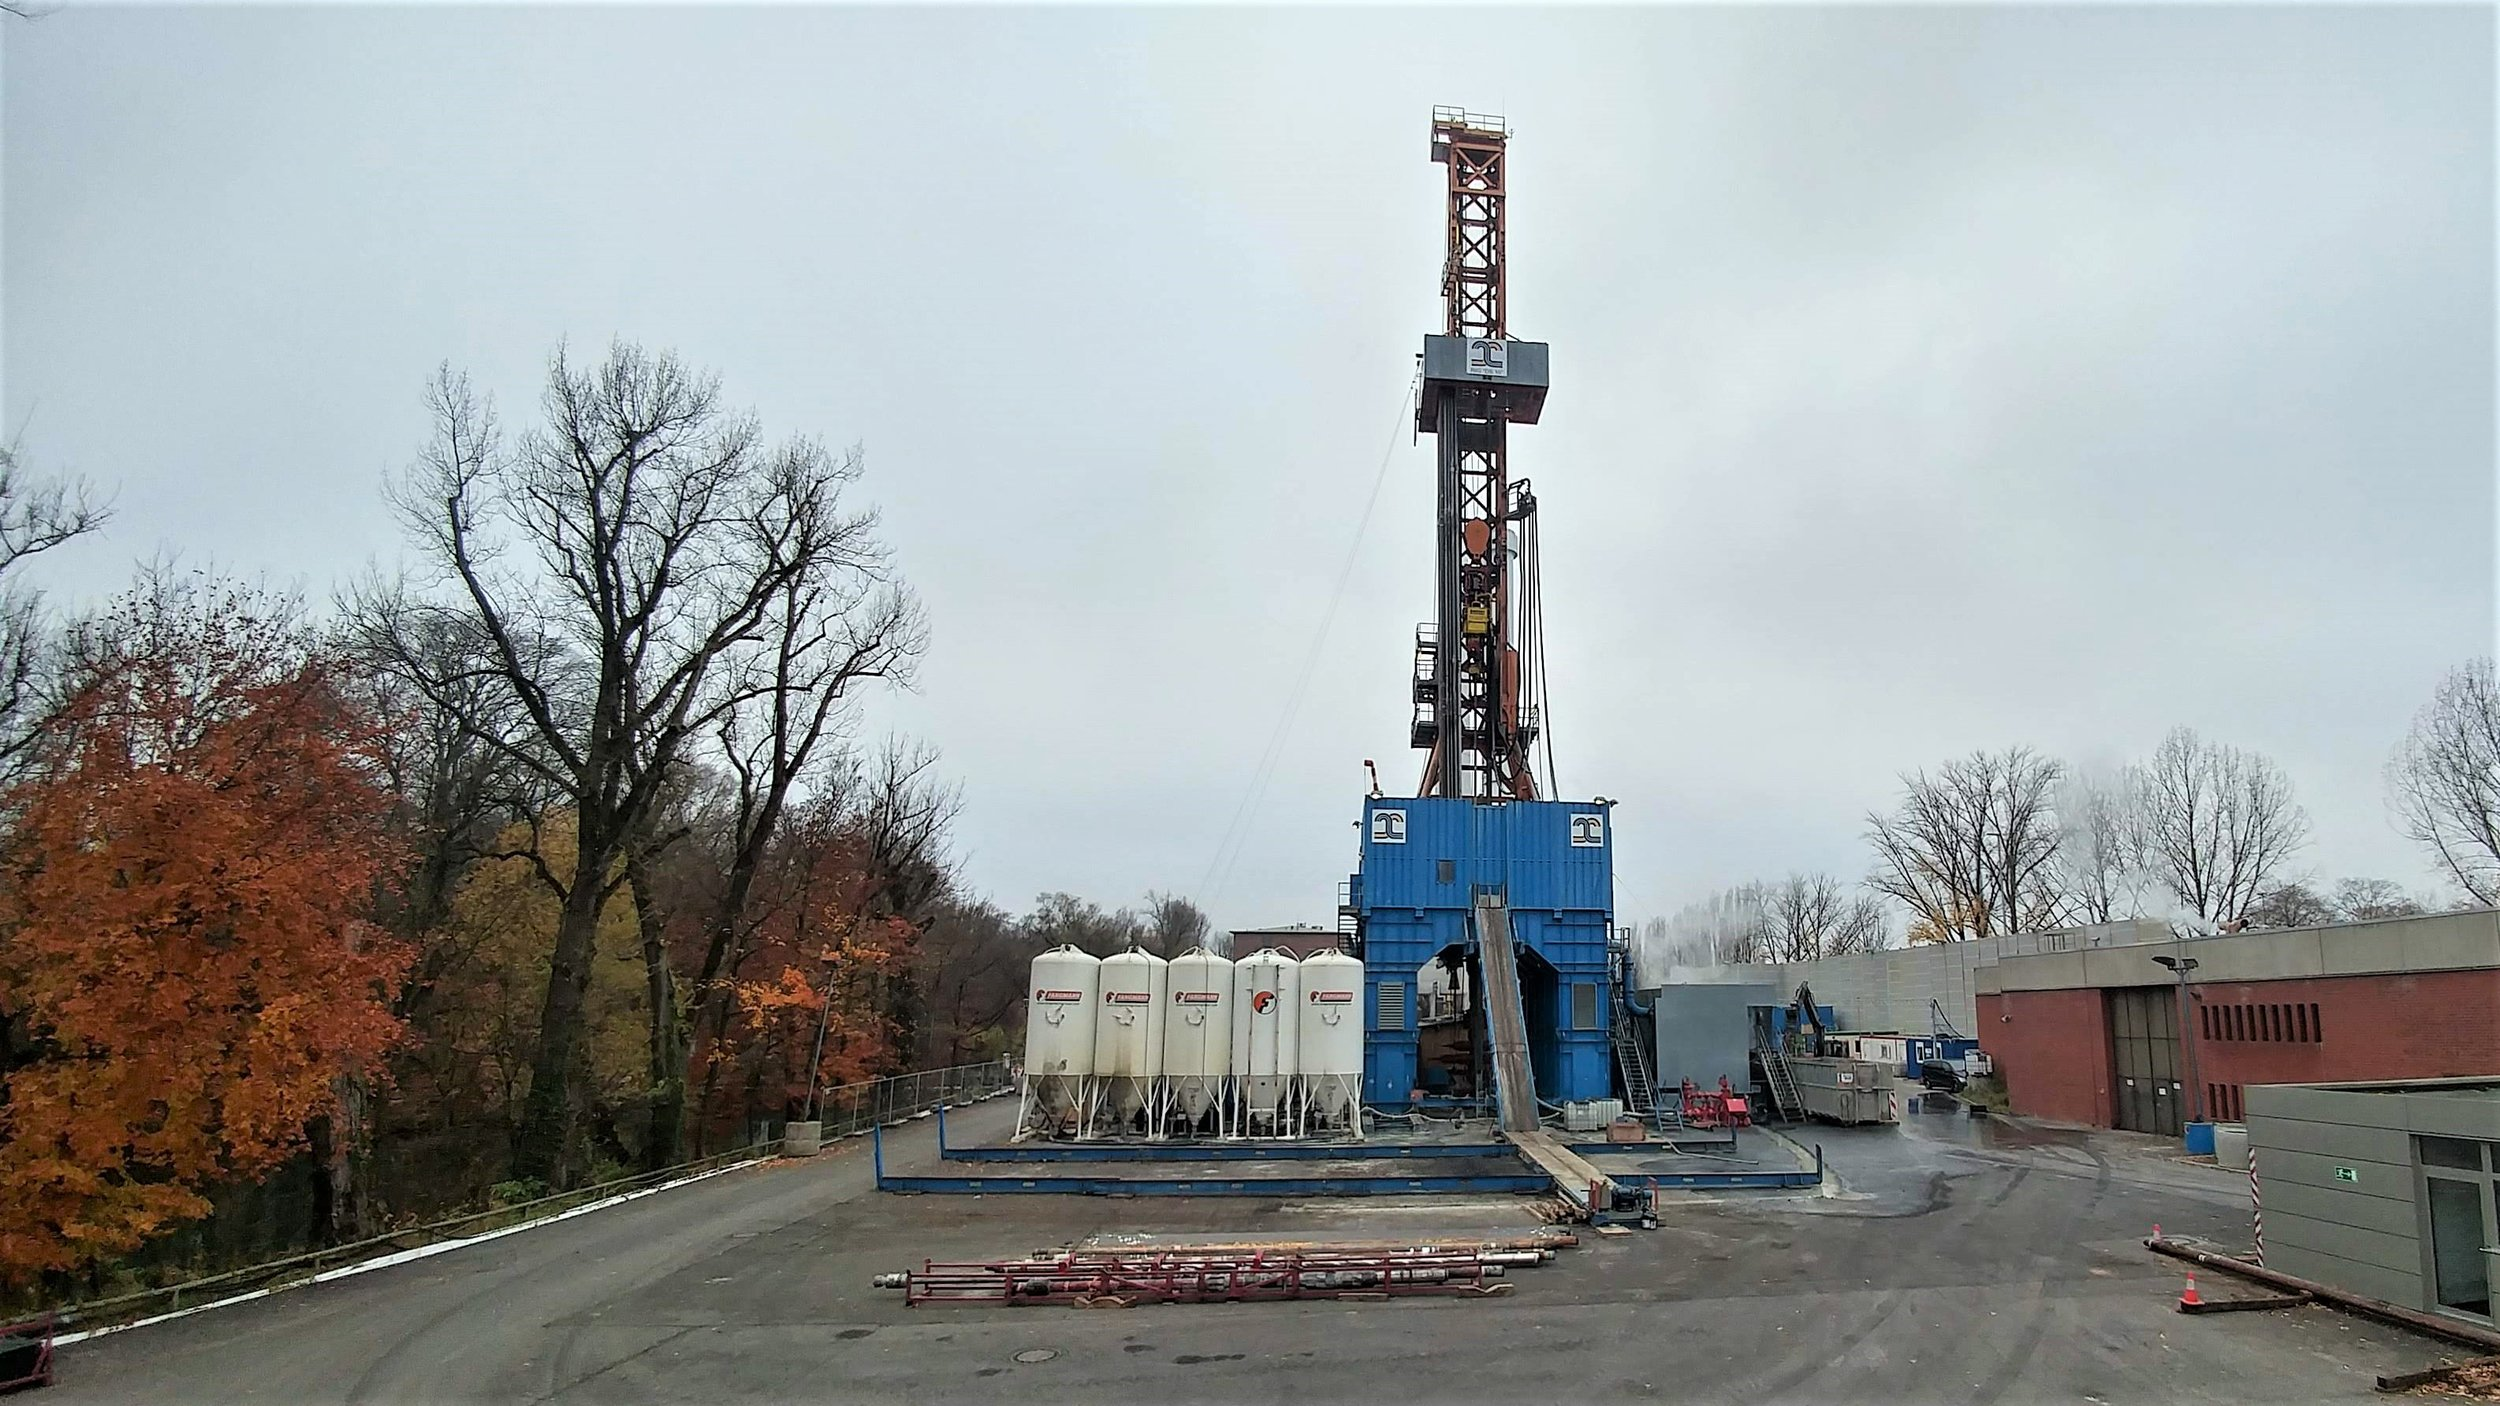 The Schaftlarnstrasse geothermal drilling operation near the Munich city center. Electronics had to be turned off while on the drill rig, so this is the best photo I've got!